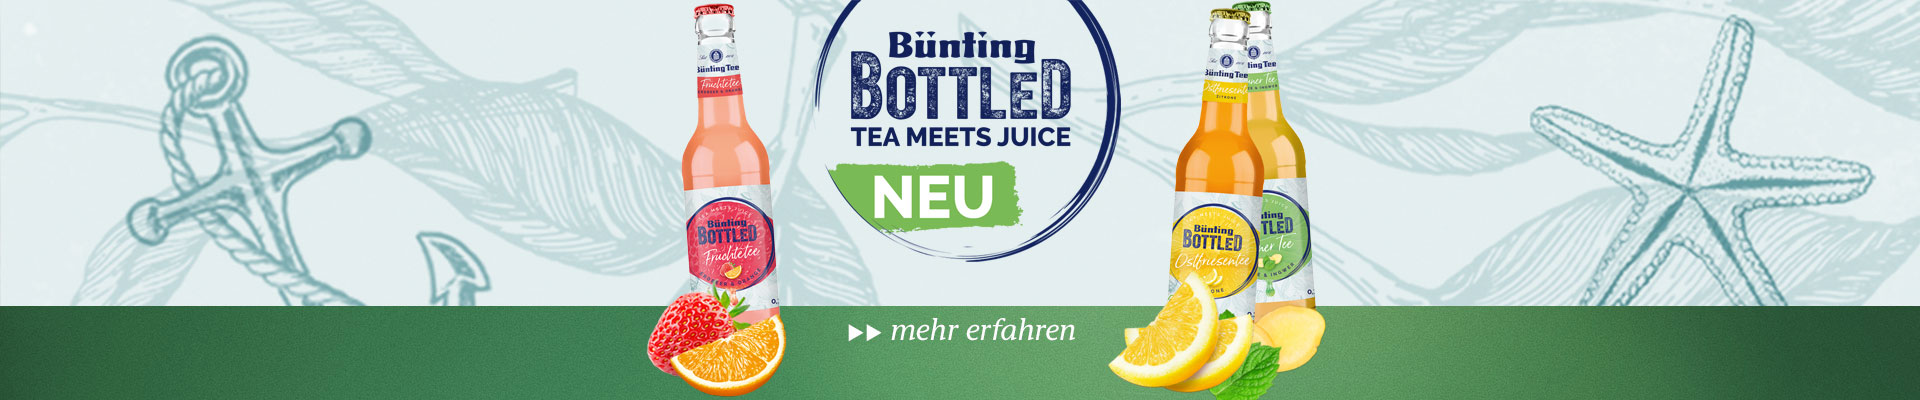 Bünting Bottled